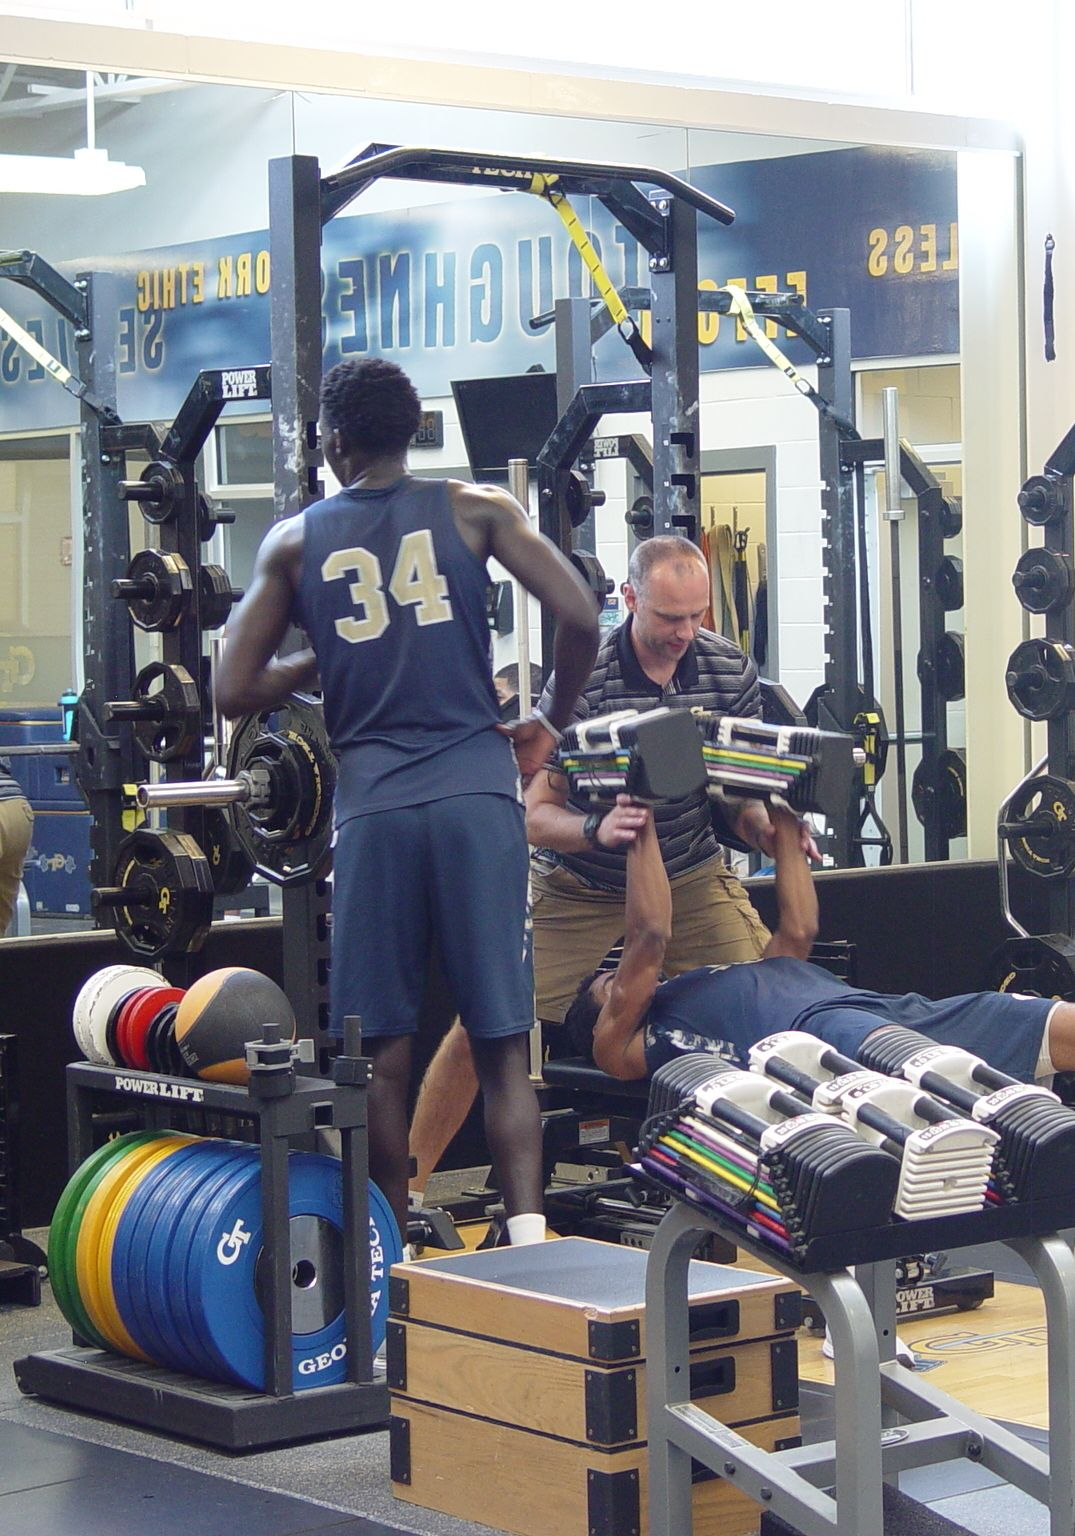 Player development coach Dan Taylor takes the Georgia Tech men's basketball team through a workout on June 16, 2016 in the Zelnak Center weight room.